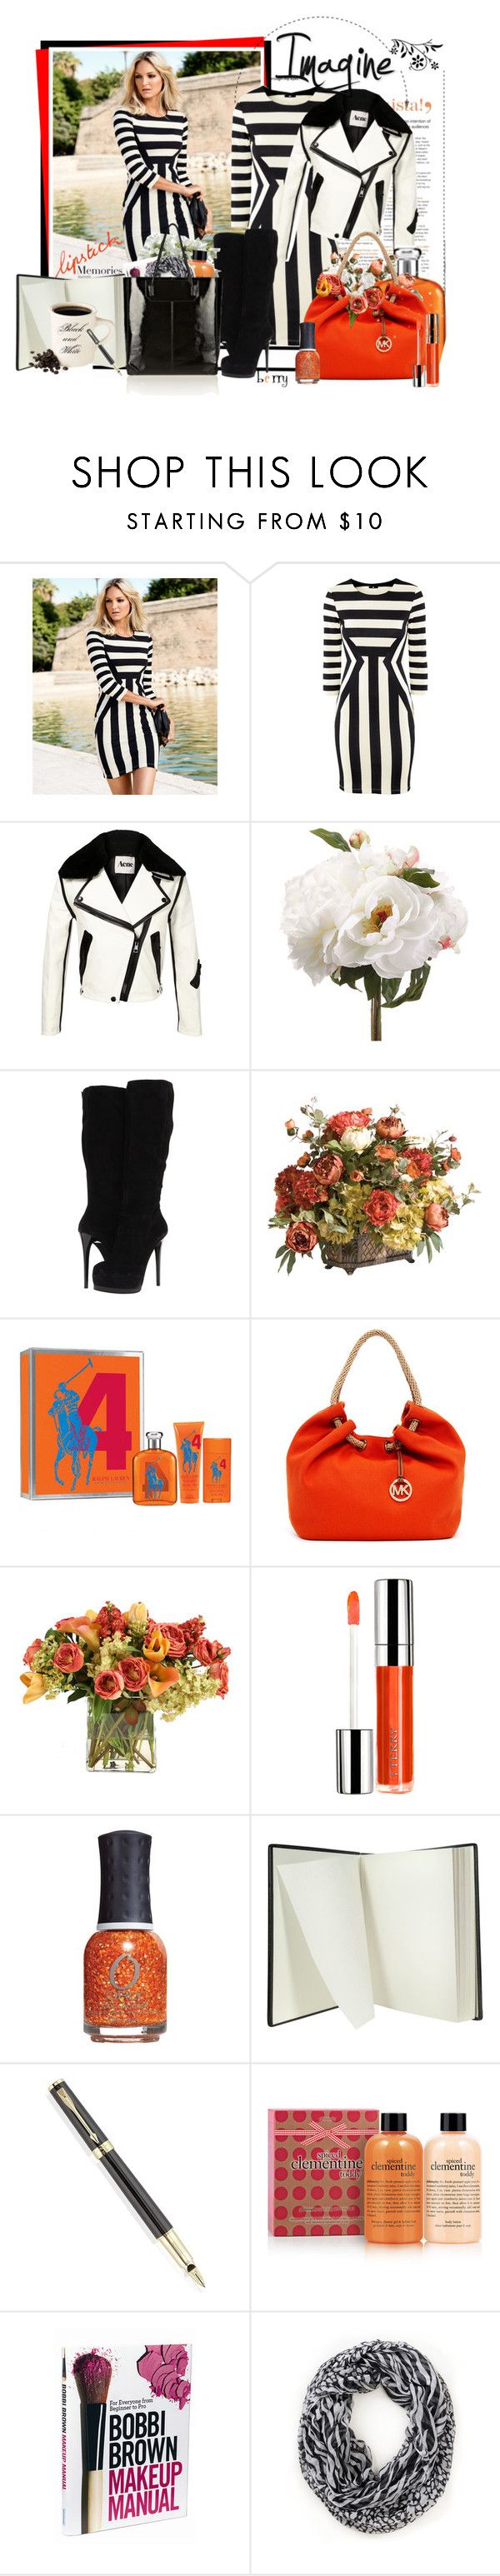 """""""Imagine enough to stand out."""" by berry1975 ❤ liked on Polyvore featuring Forum, H&M, Acne Studios, Pour La Victoire, Ethan Allen, MICHAEL Michael Kors, Distinctive Designs, By Terry, ORLY and Pineider"""